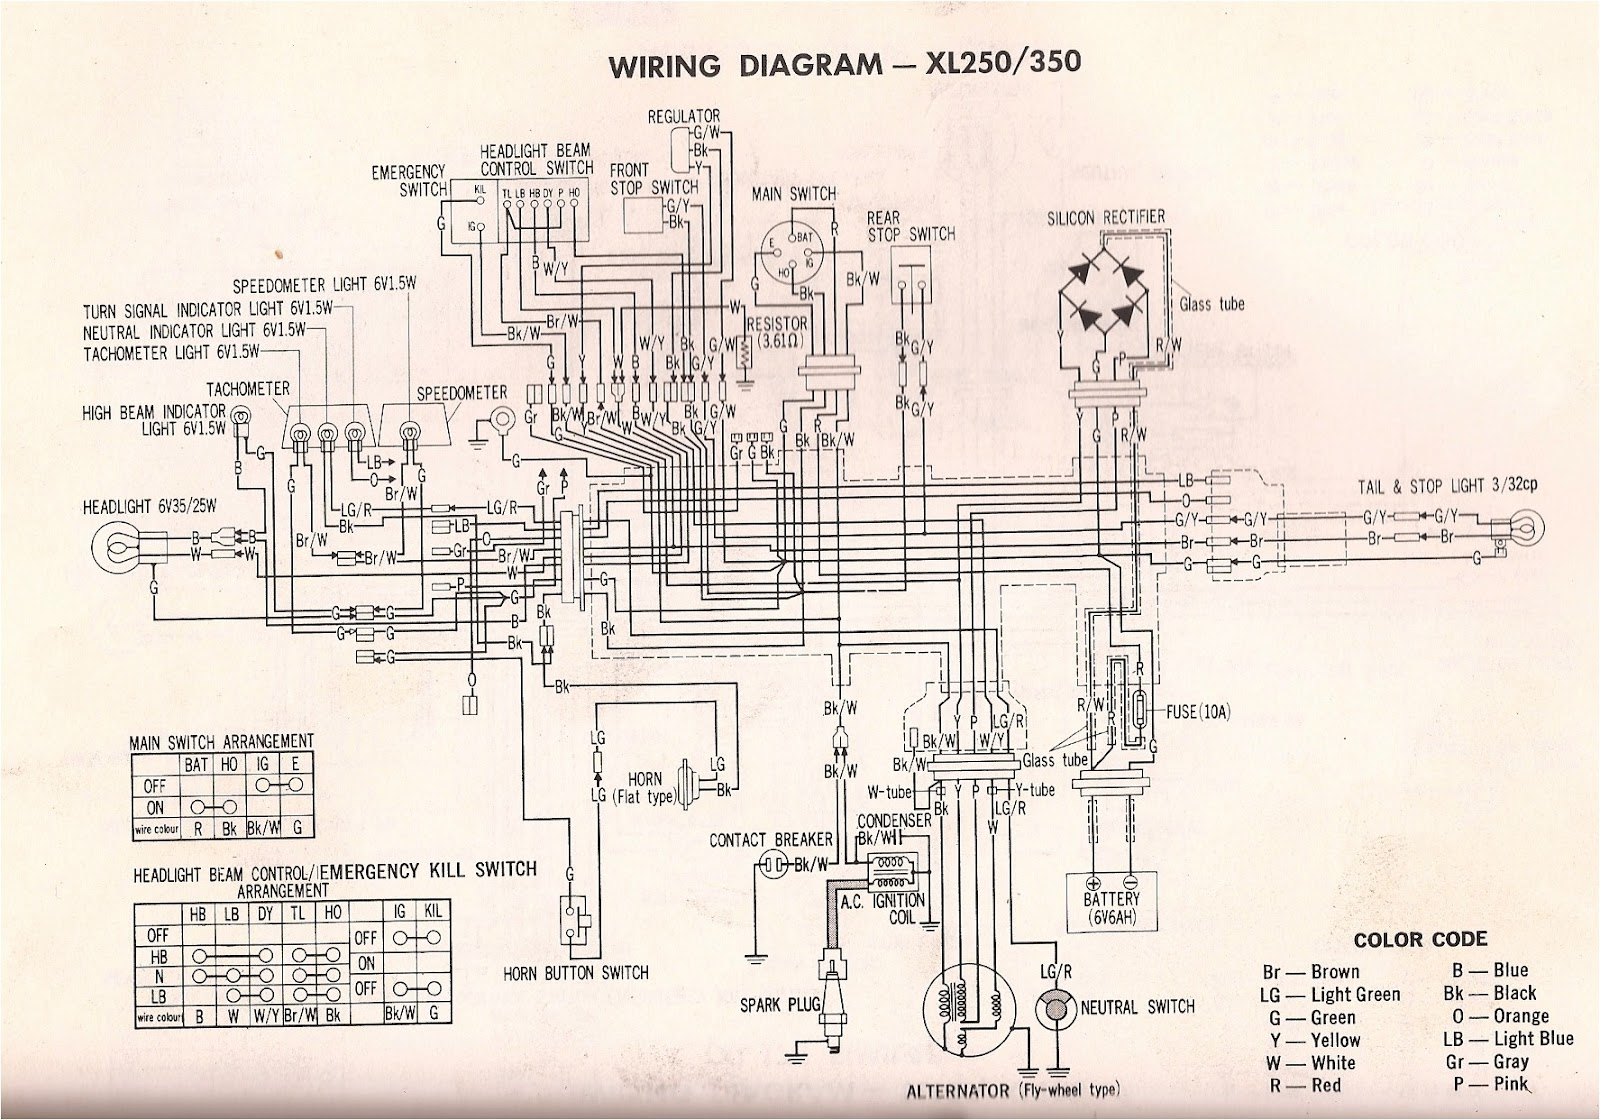 XL350+Wiring+diagram+S r4l xl350 wiring diagram (and xl250) 1978 honda hobbit wiring diagram at eliteediting.co